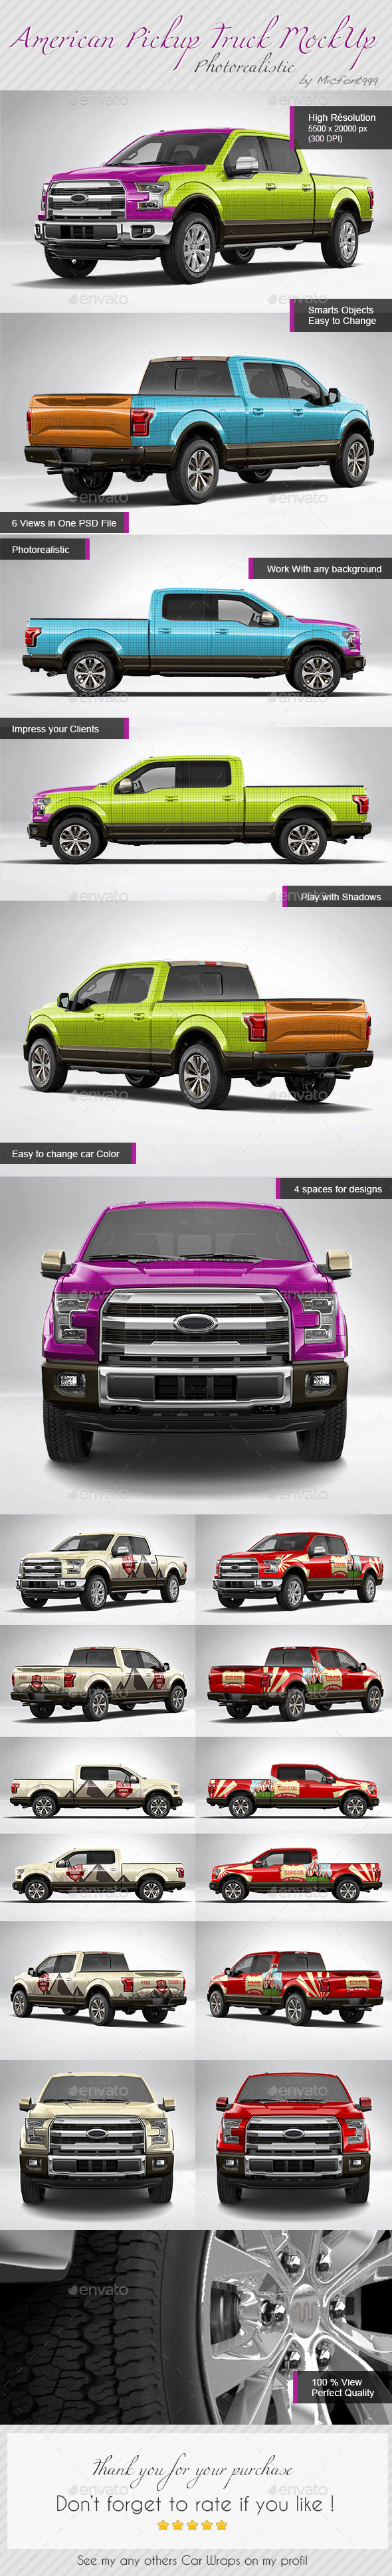 GraphicRiver Photorealistic American Pickup Truck Wrap Mock-up 11294880